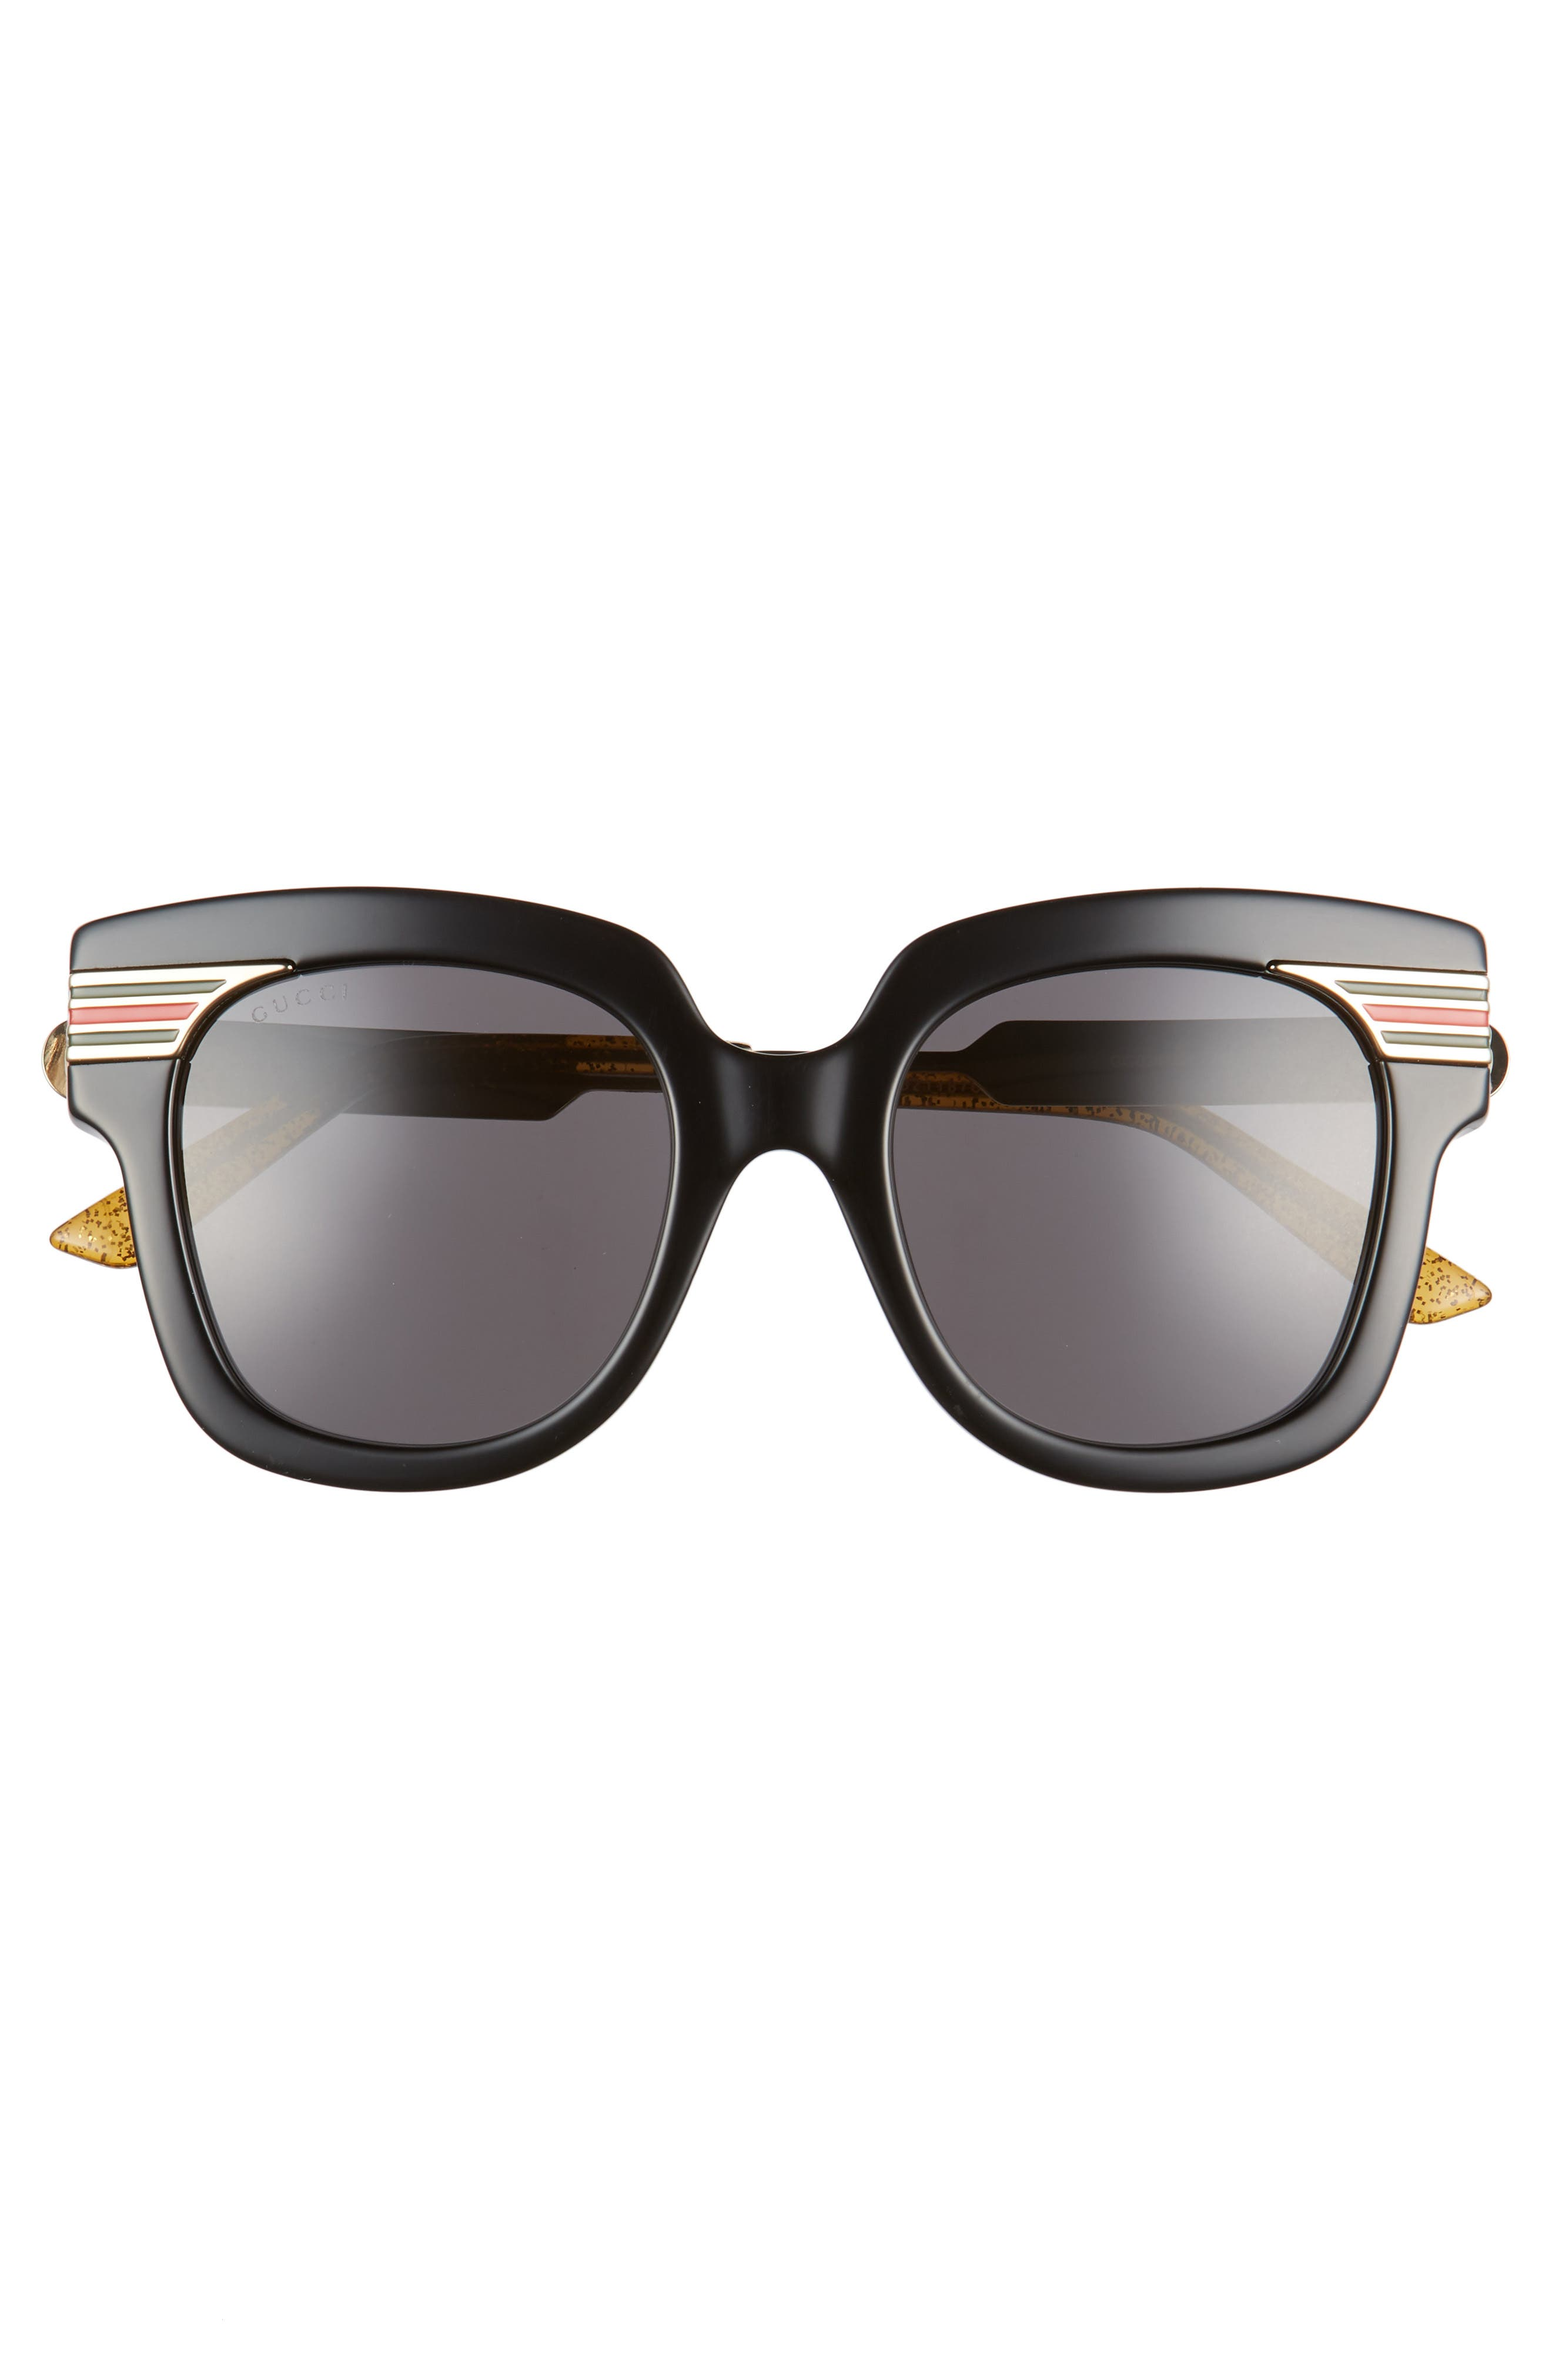 51mm Cat Eye Sunglasses,                             Alternate thumbnail 3, color,                             Black/ Gold